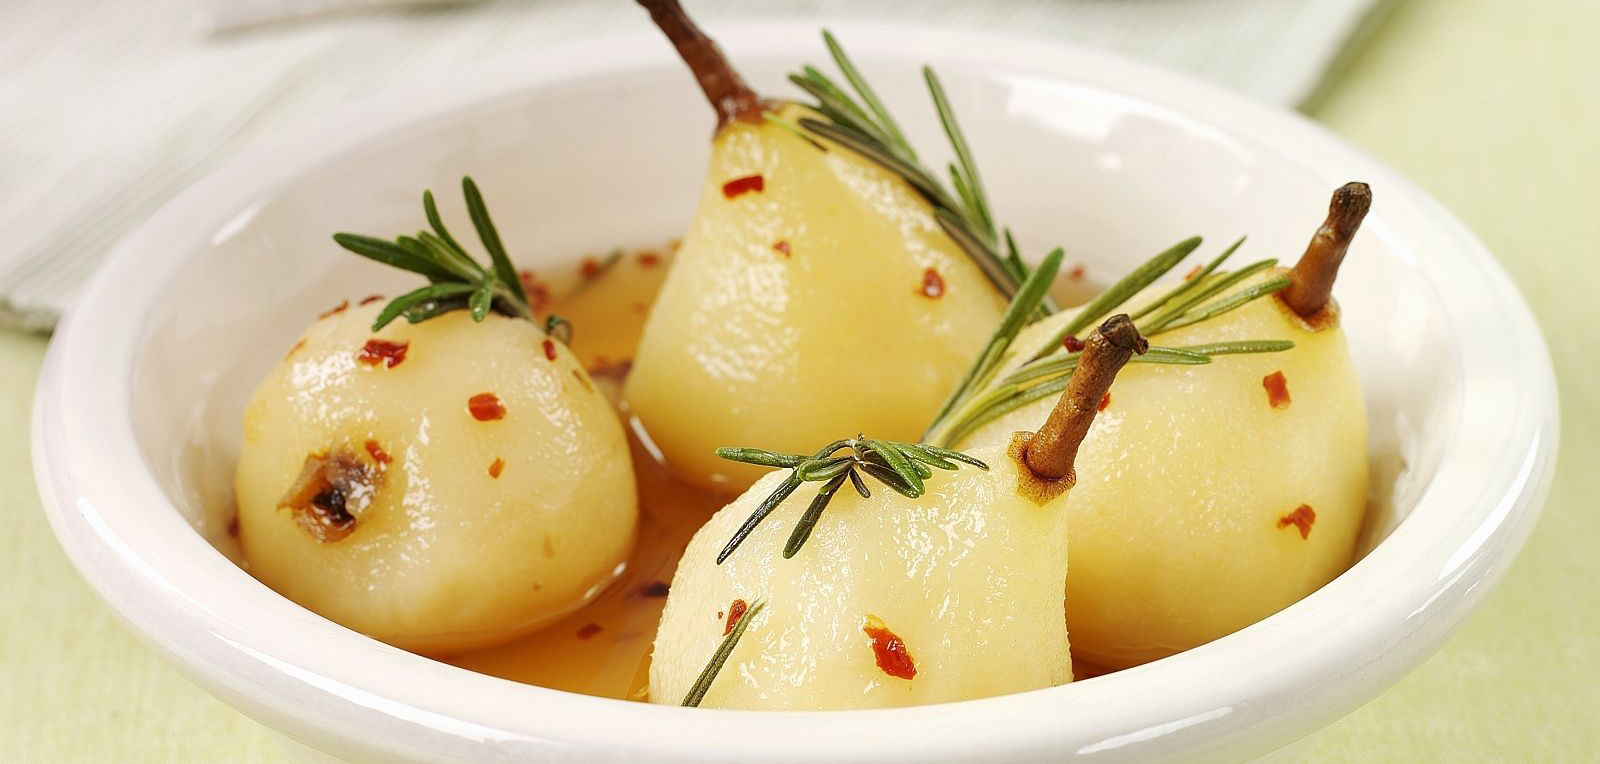 gordon ramsay, chilli poached pears, chef, recipe, celebrity chefs, ingredients, nutritions, fat, carbs, entertainment, hell's kitchen